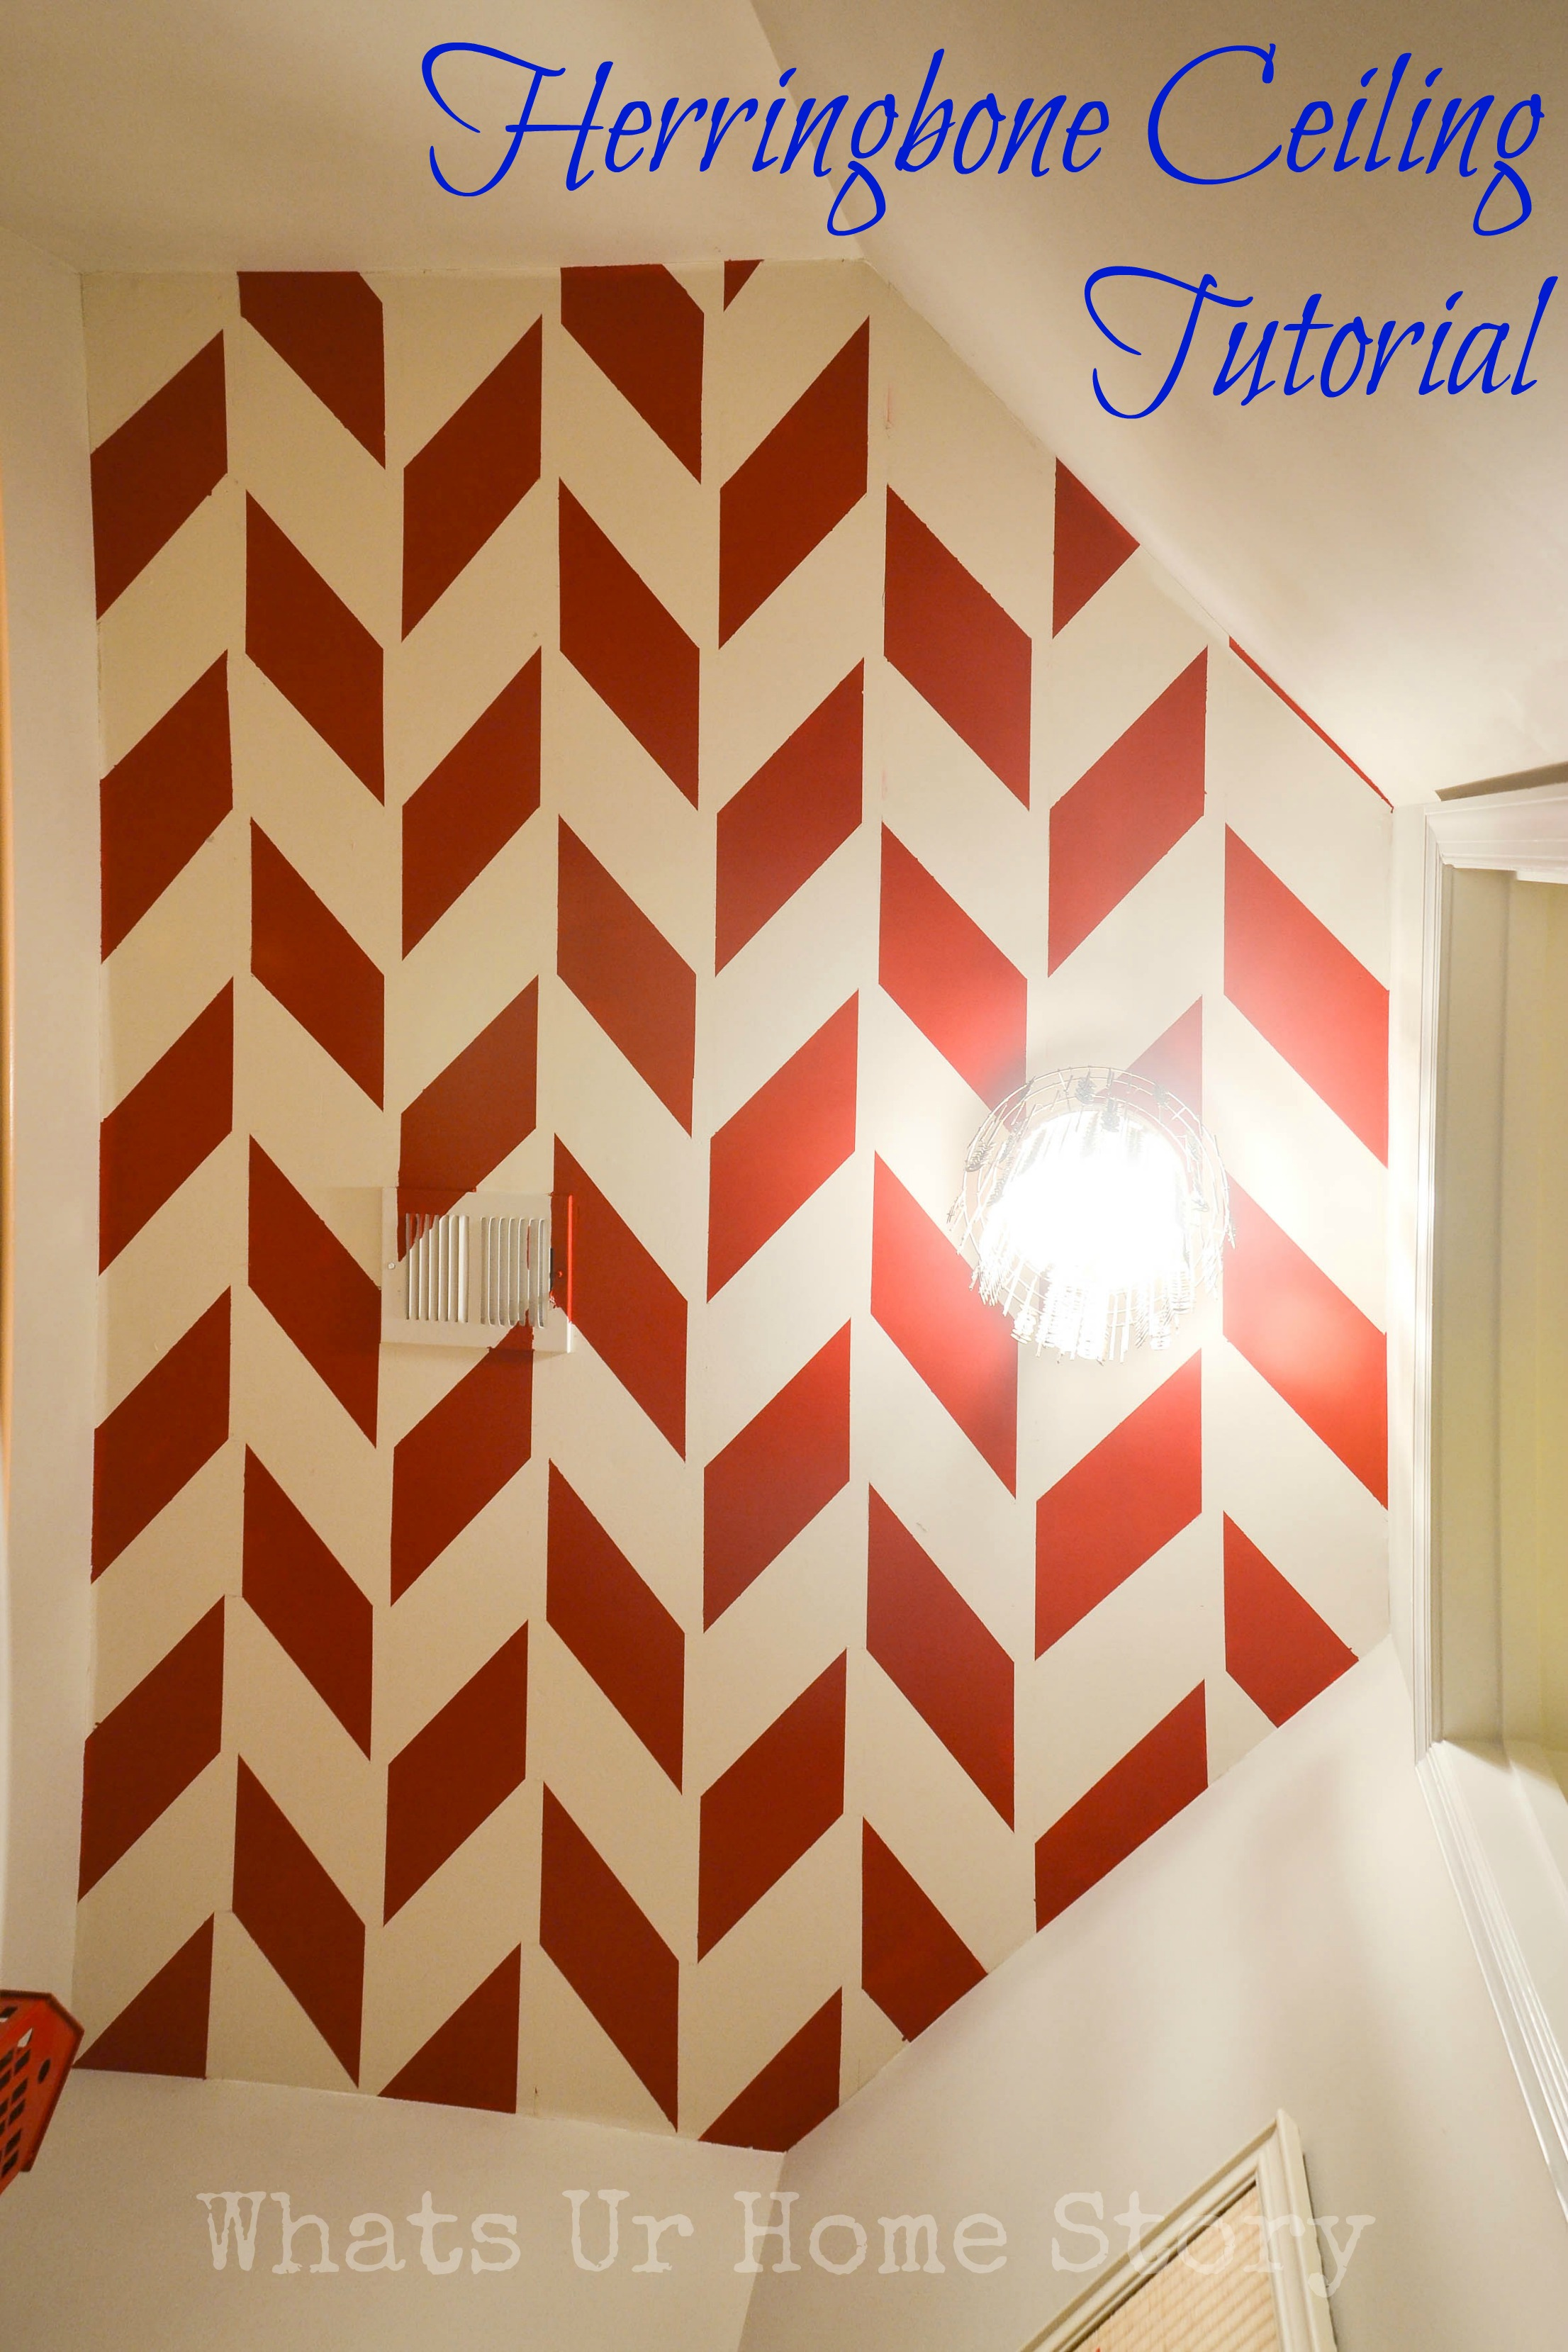 herringbone ceiling tutorial, herringbone ceiling